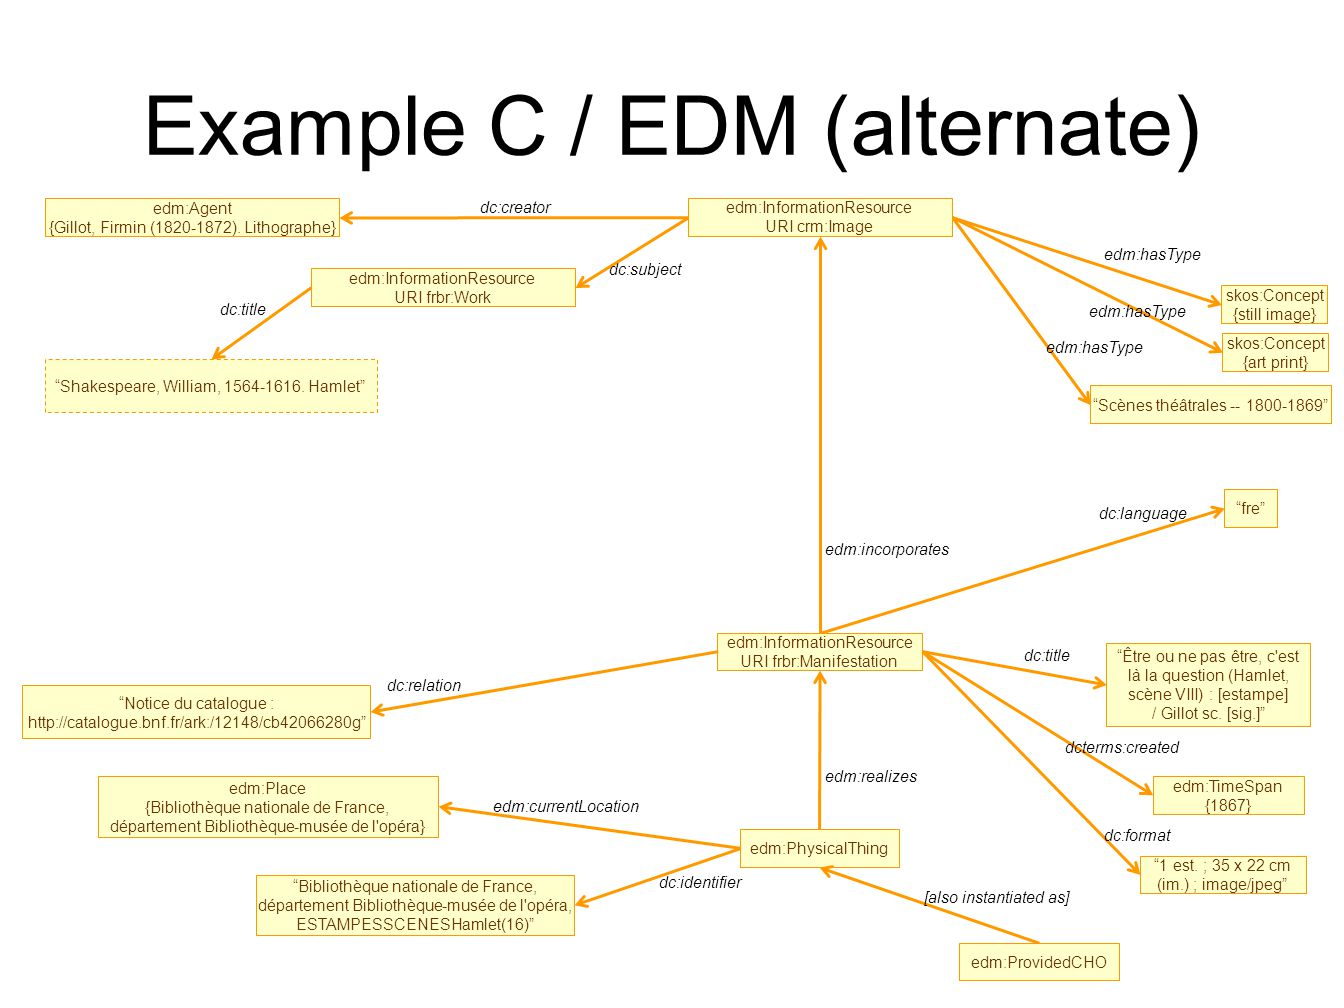 Example C / EDM (alternate) dc:language edm:Agent {Gillot, Firmin (1820-1872).